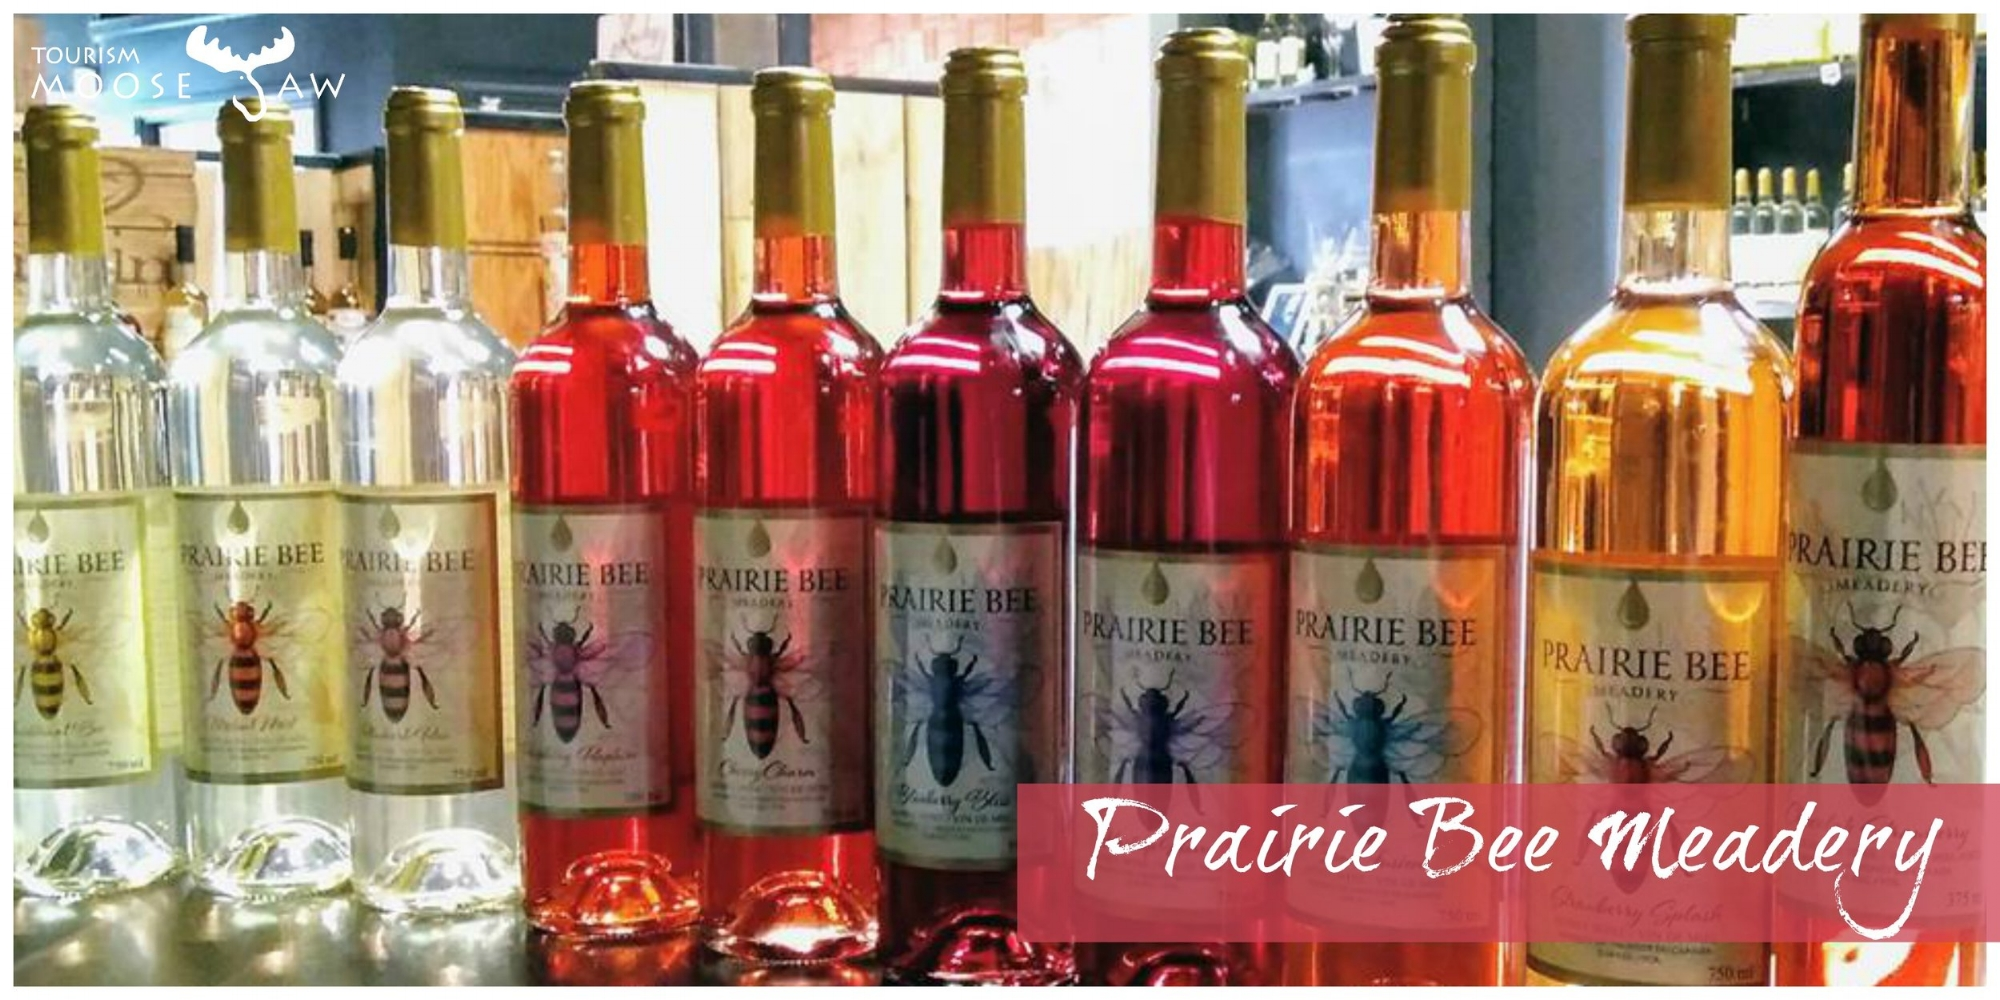 Prairie Bee Meadery  Honey wine! The staff at Prairie Bee will tell you a bit about their story. Learn how they went from a local U-Pick Garden to award winning wine makers. Sample their unique wine offerings such as Haskap or Melon.